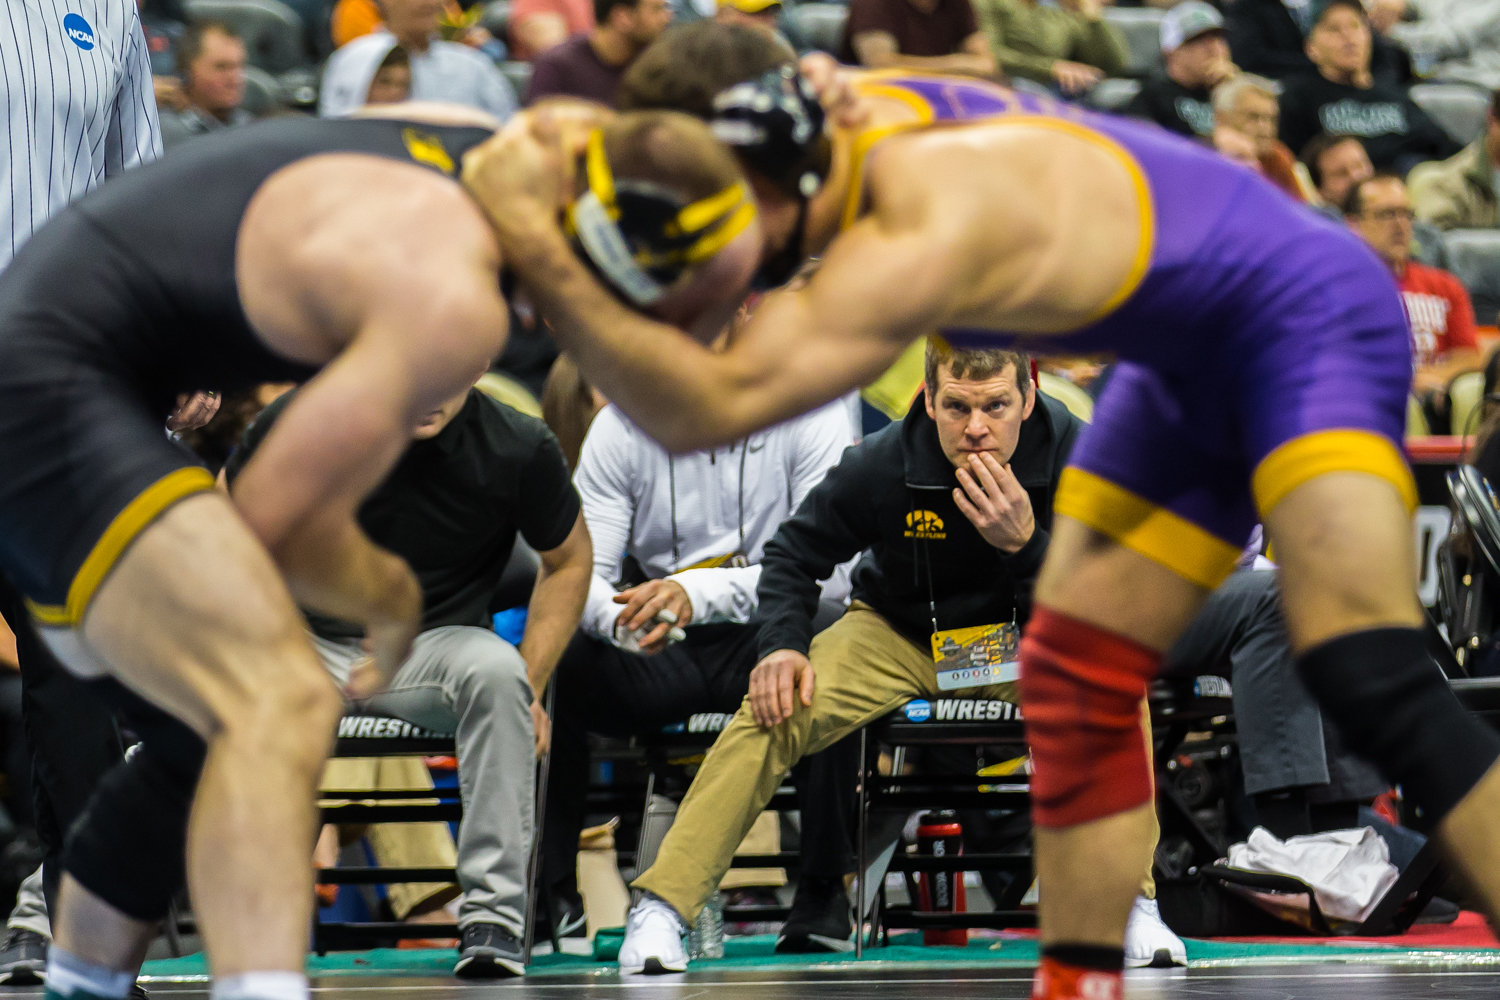 Iowa's 165-pound Alex Marinelli wrestles Northern Iowa's Bryce Steiert during the fifth session of the 2019 NCAA D1 Wrestling Championships at the PPG Paints Arena in Pittsburgh, PA on Saturday, March 23, 2019. Marinelli won by decision, 9-3, and earned seventh in the weight class.